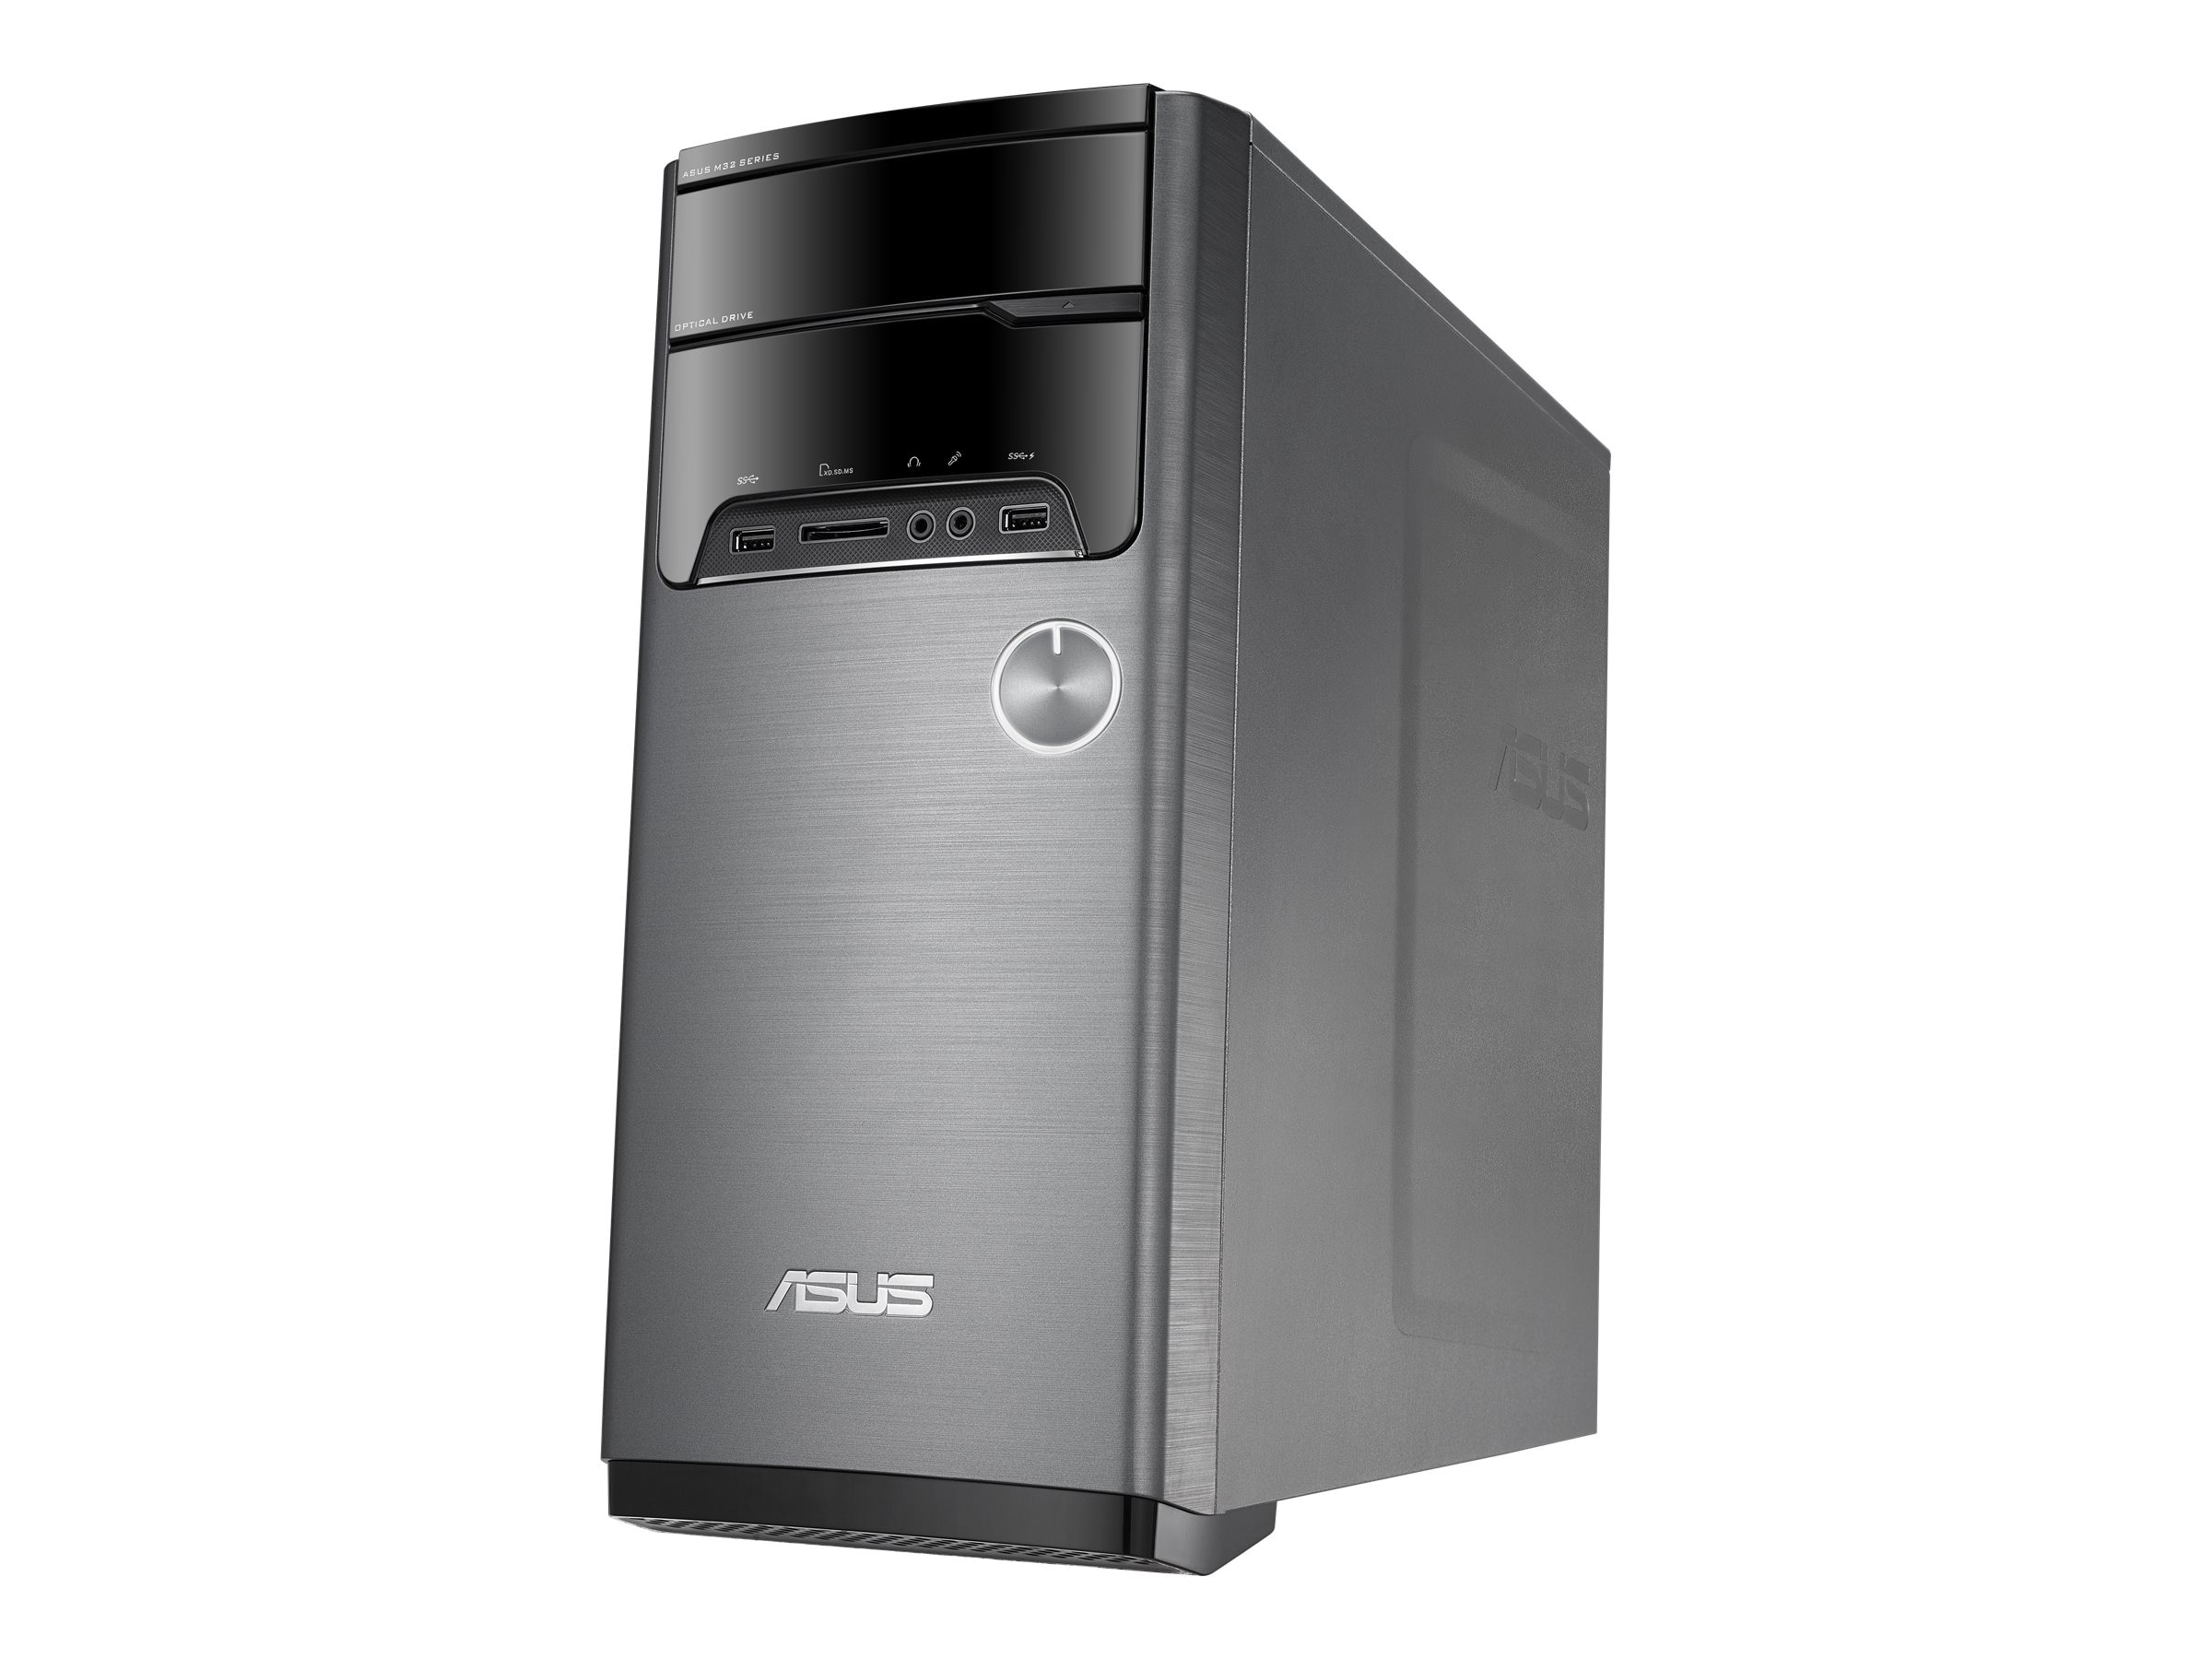 Asus M32AD-US004T Desktop Core i3-4160 3.6GHz 4GB 1TB W10